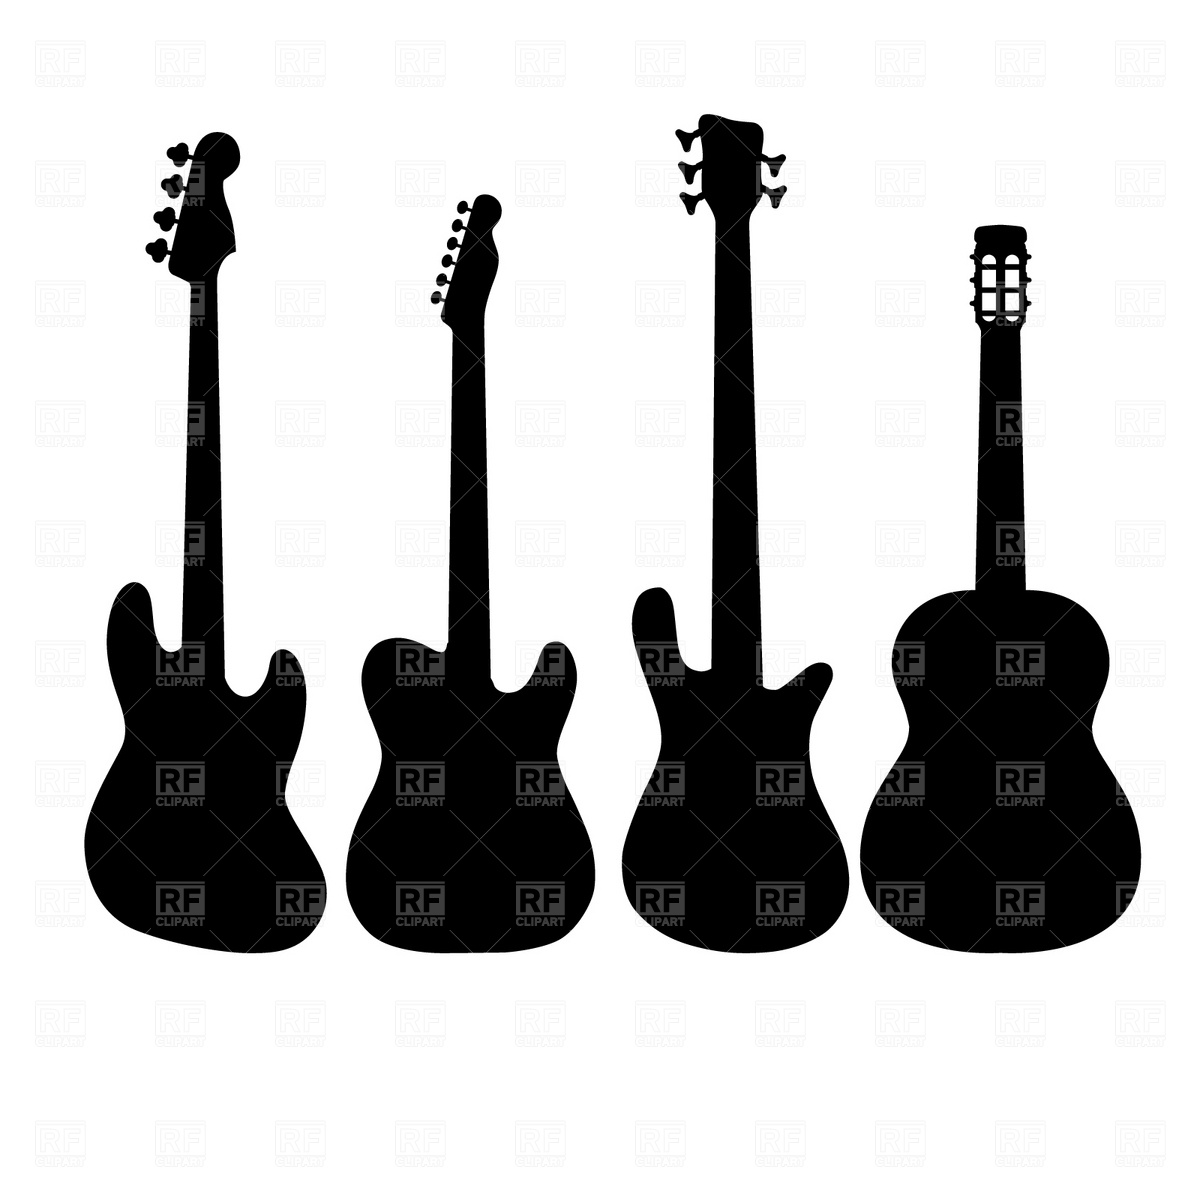 1200x1200 Guitar Silhouette Vector Image Vector Artwork Of Silhouettes